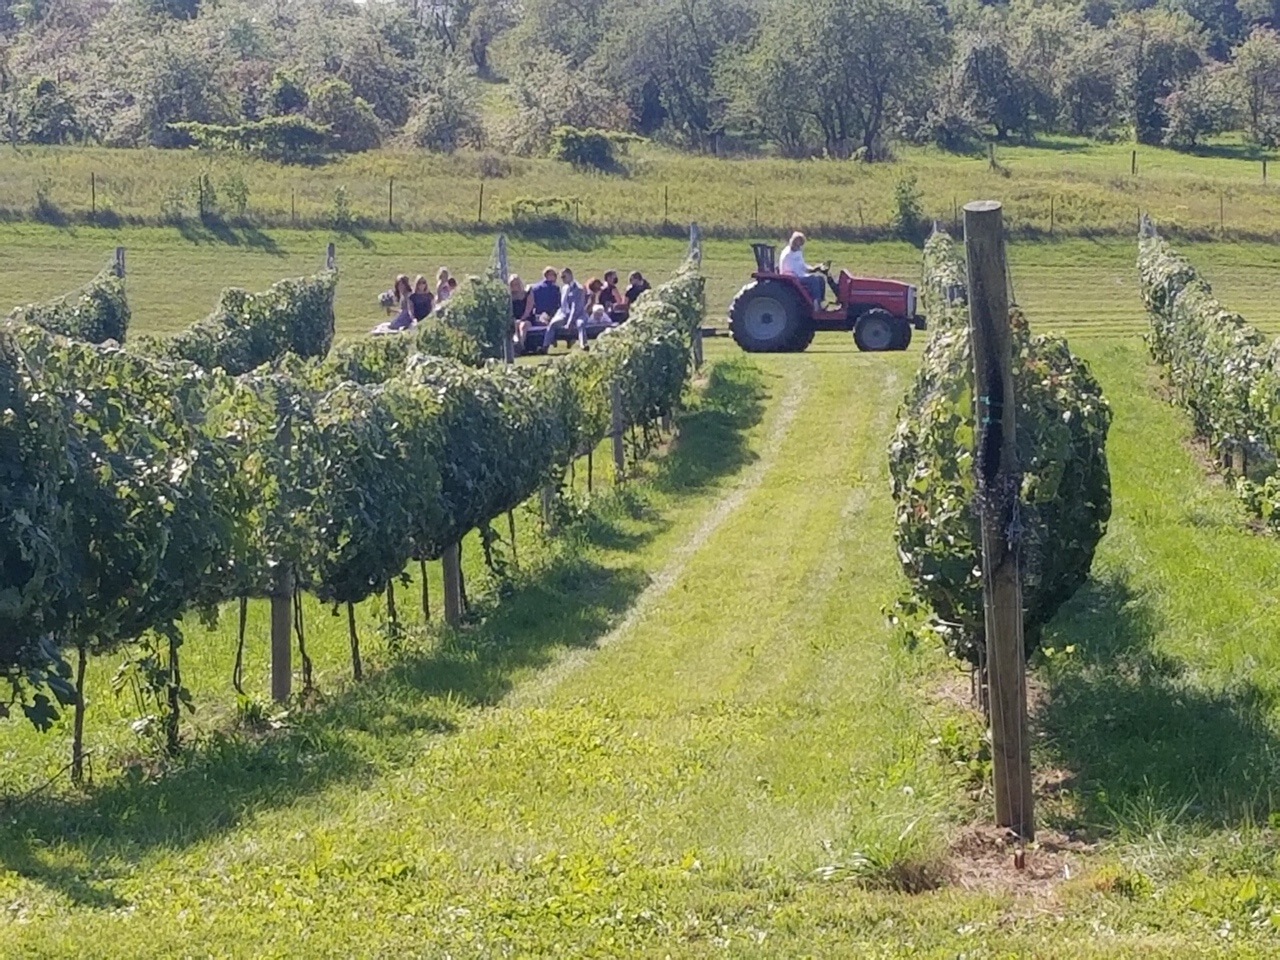 Tractor ride to ceremony in the vineyard